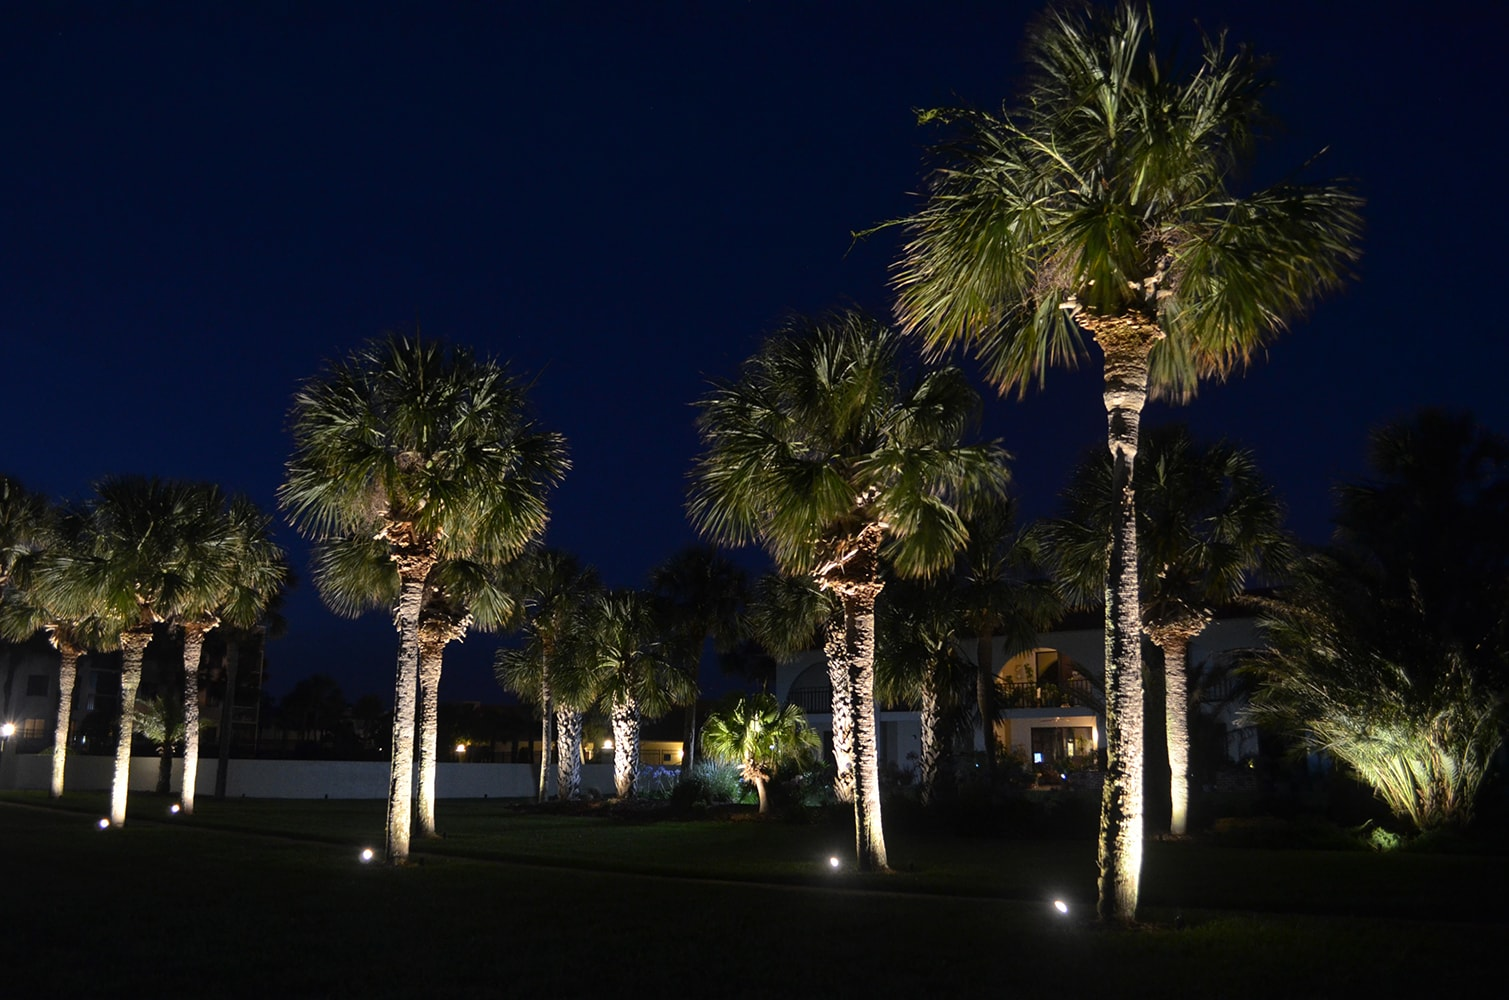 Exterior lights on trees in the front yard